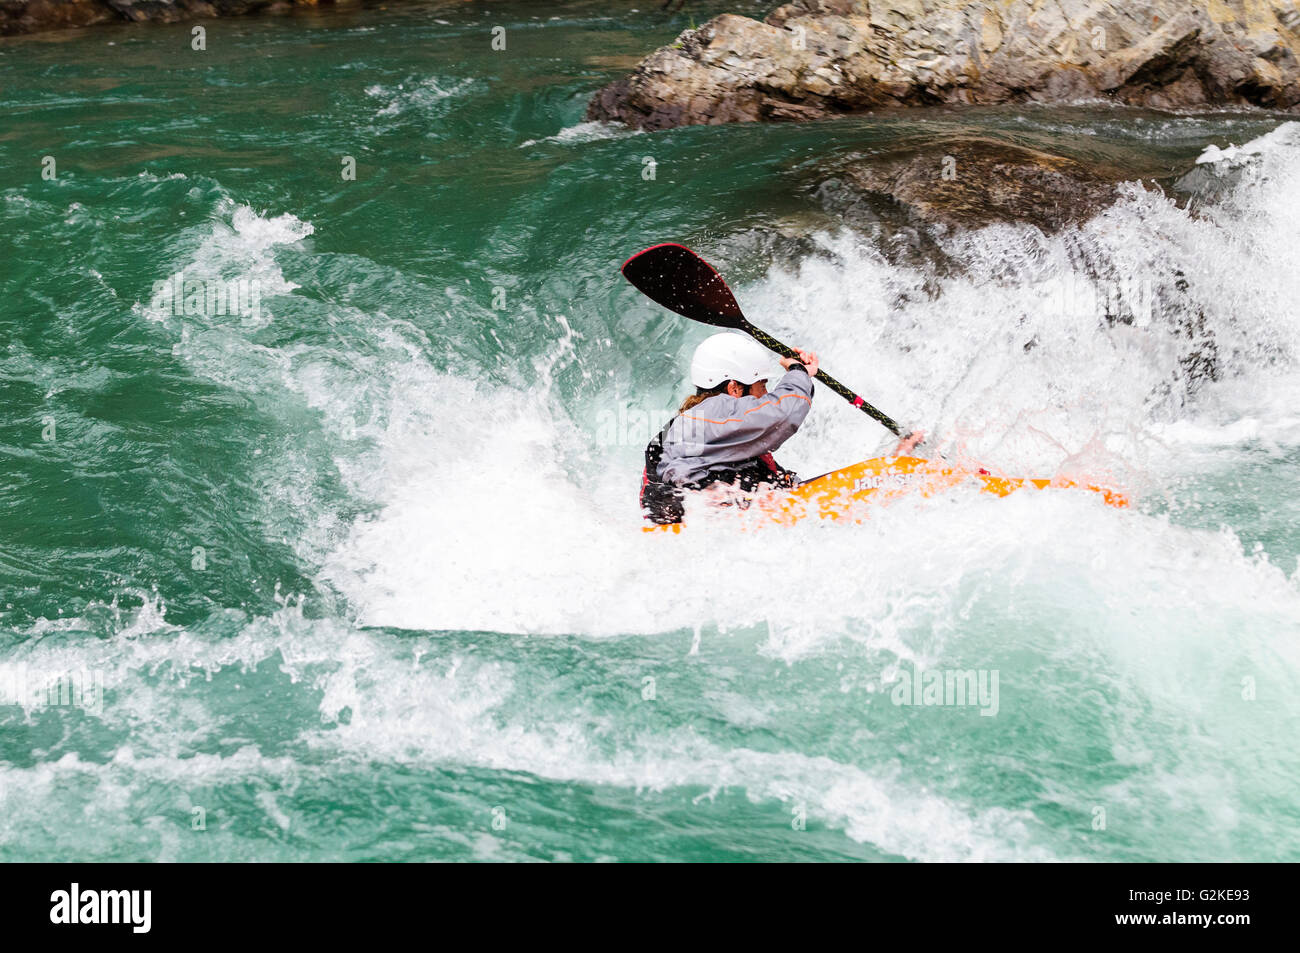 A freestyle kayaker navigates the rapids on the Kananaskis River at the Canoe Meadows course in Alberta. - Stock Image